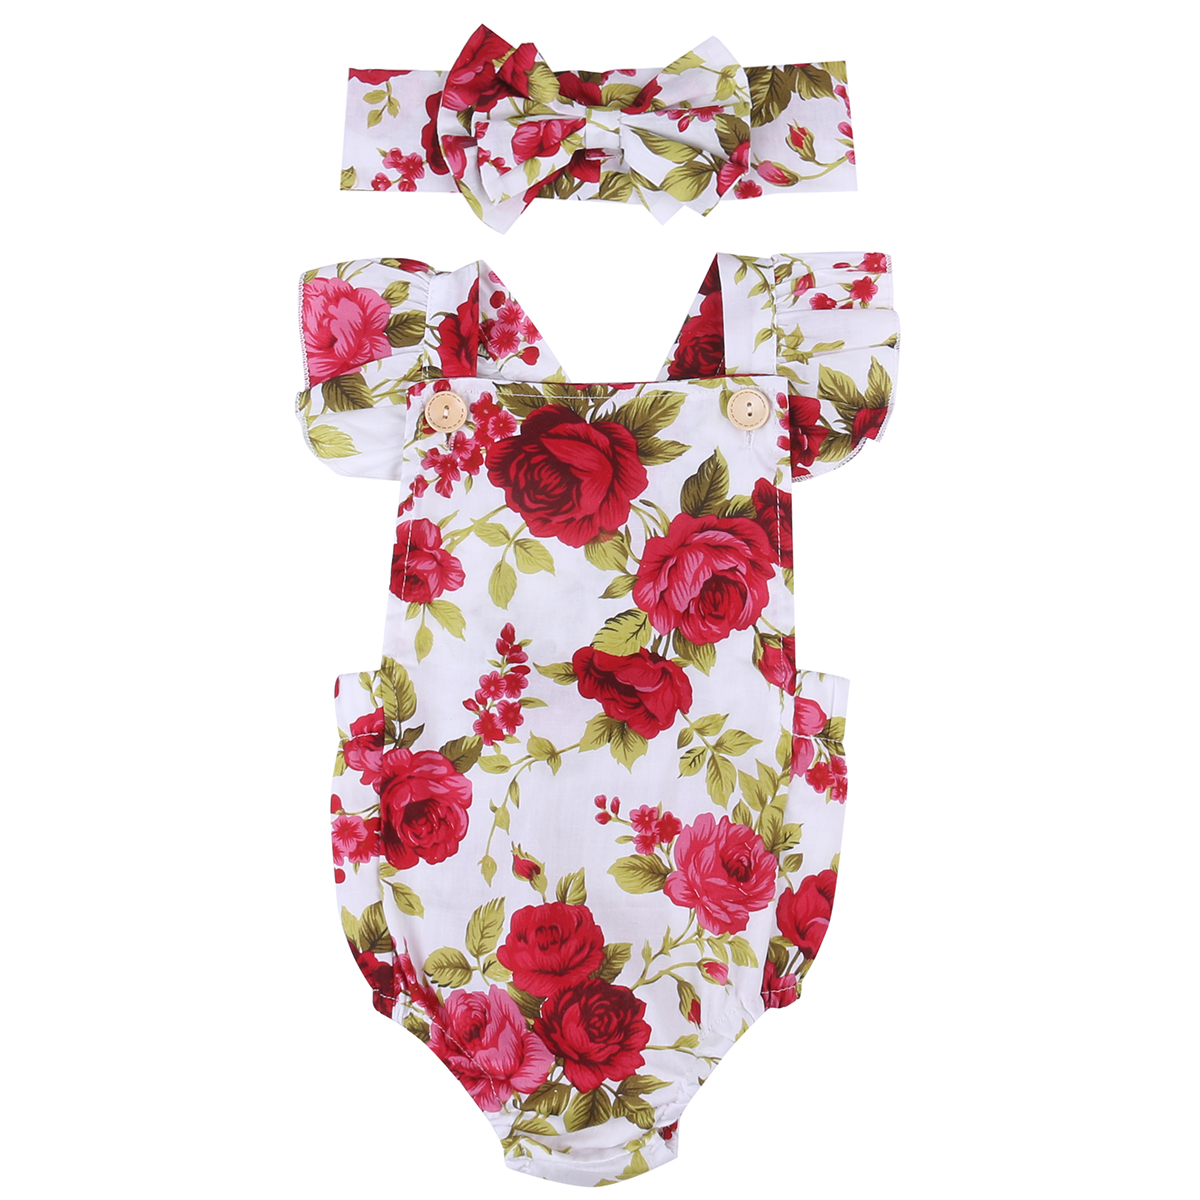 2017 Floral Baby Romper Newborn Baby Girl Clothes Ruffles Sleeve Bodysuit +Headband 2pcs Outfit Bebek Giyim Sunsuit 0-24M 3pcs set newborn infant baby boy girl clothes 2017 summer short sleeve leopard floral romper bodysuit headband shoes outfits